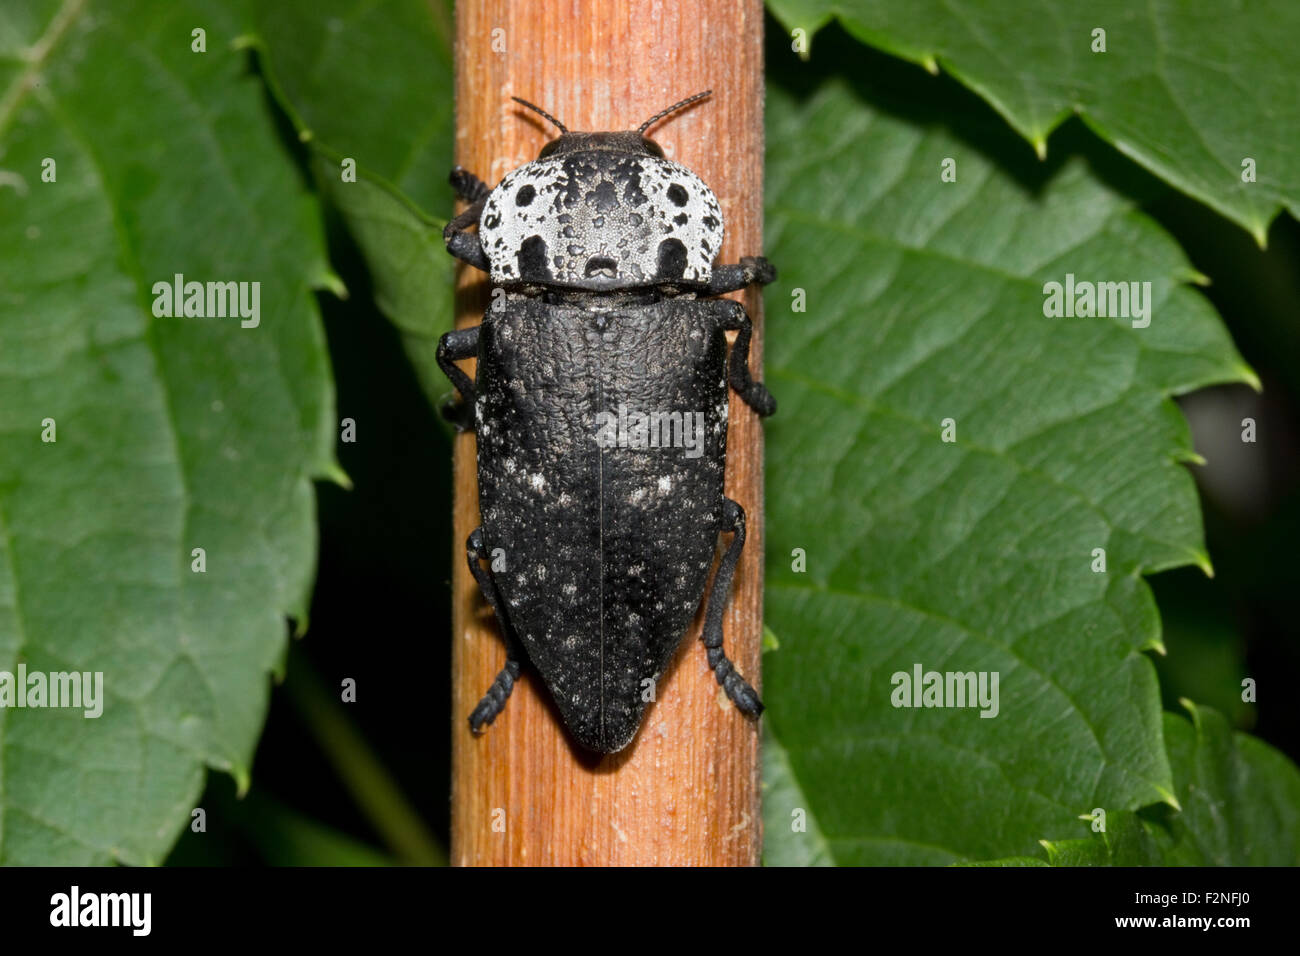 microphotograph of an sp. Capnodis cariosa (english name: Metallic wood-boring beetle) resting on a branch. - Stock Image